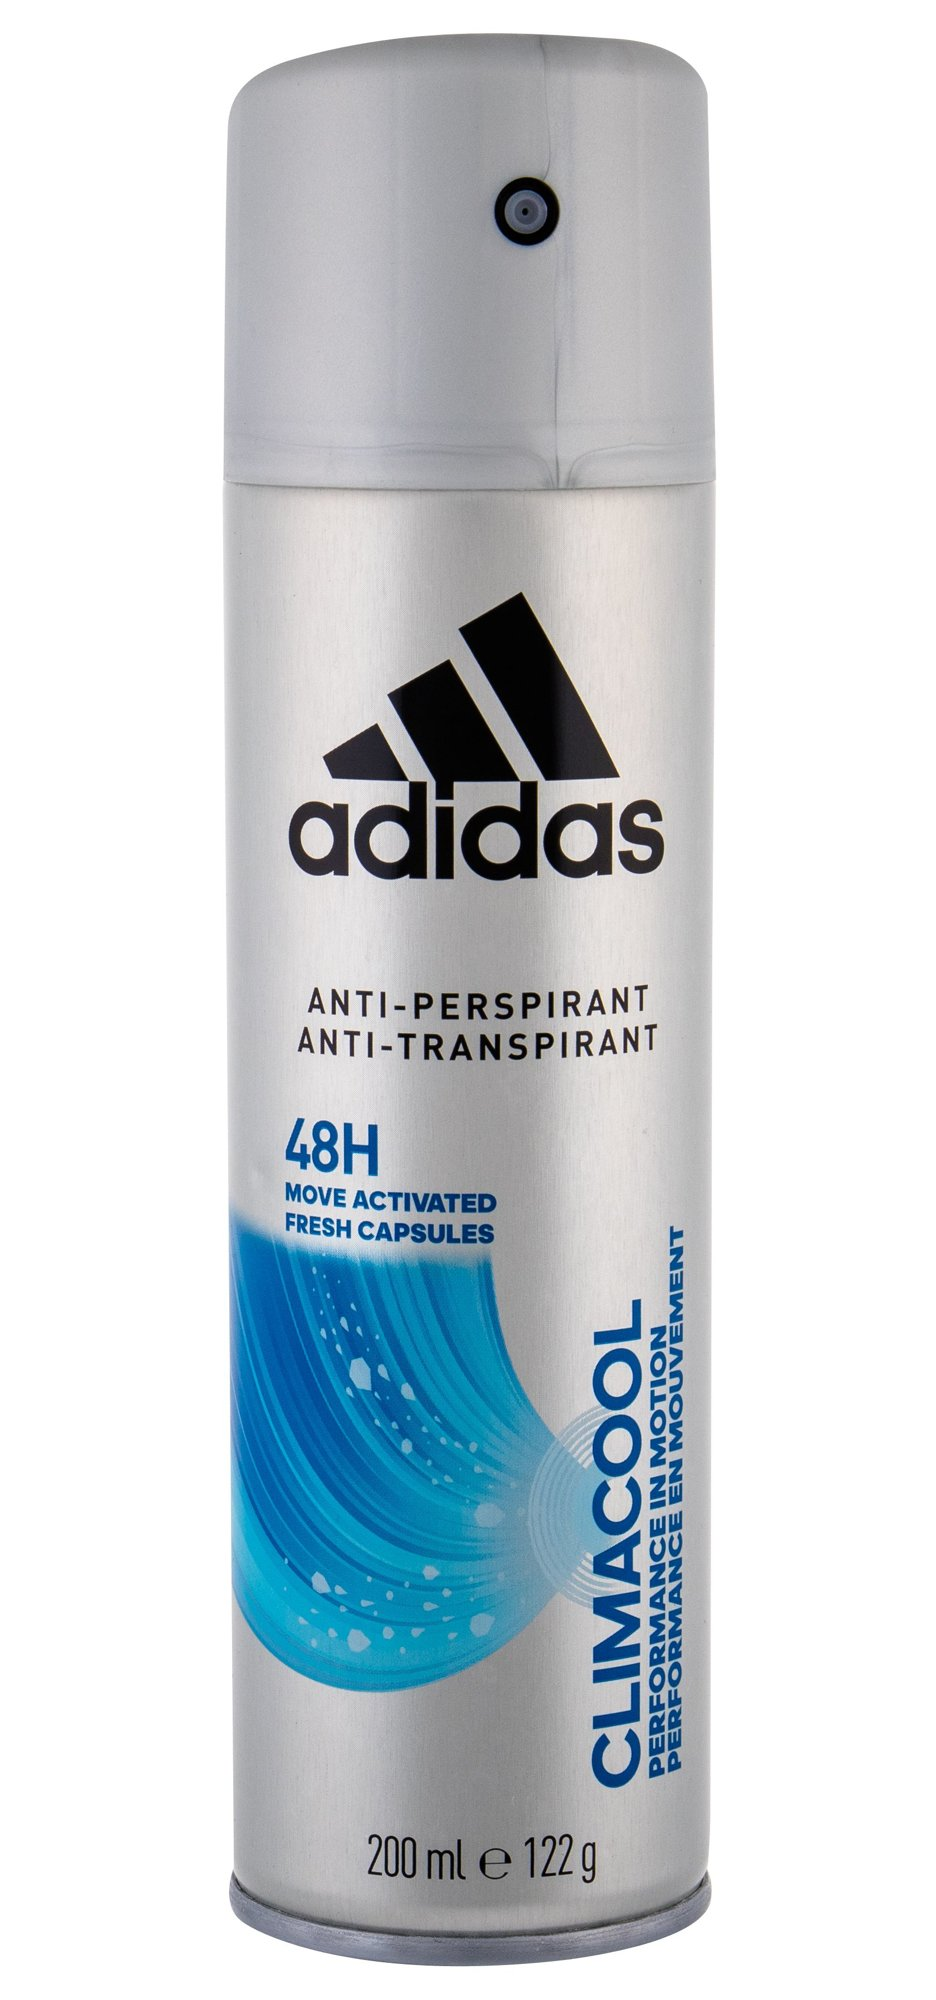 Adidas Climacool 48H (Antiperspirant, M, 200 ml)